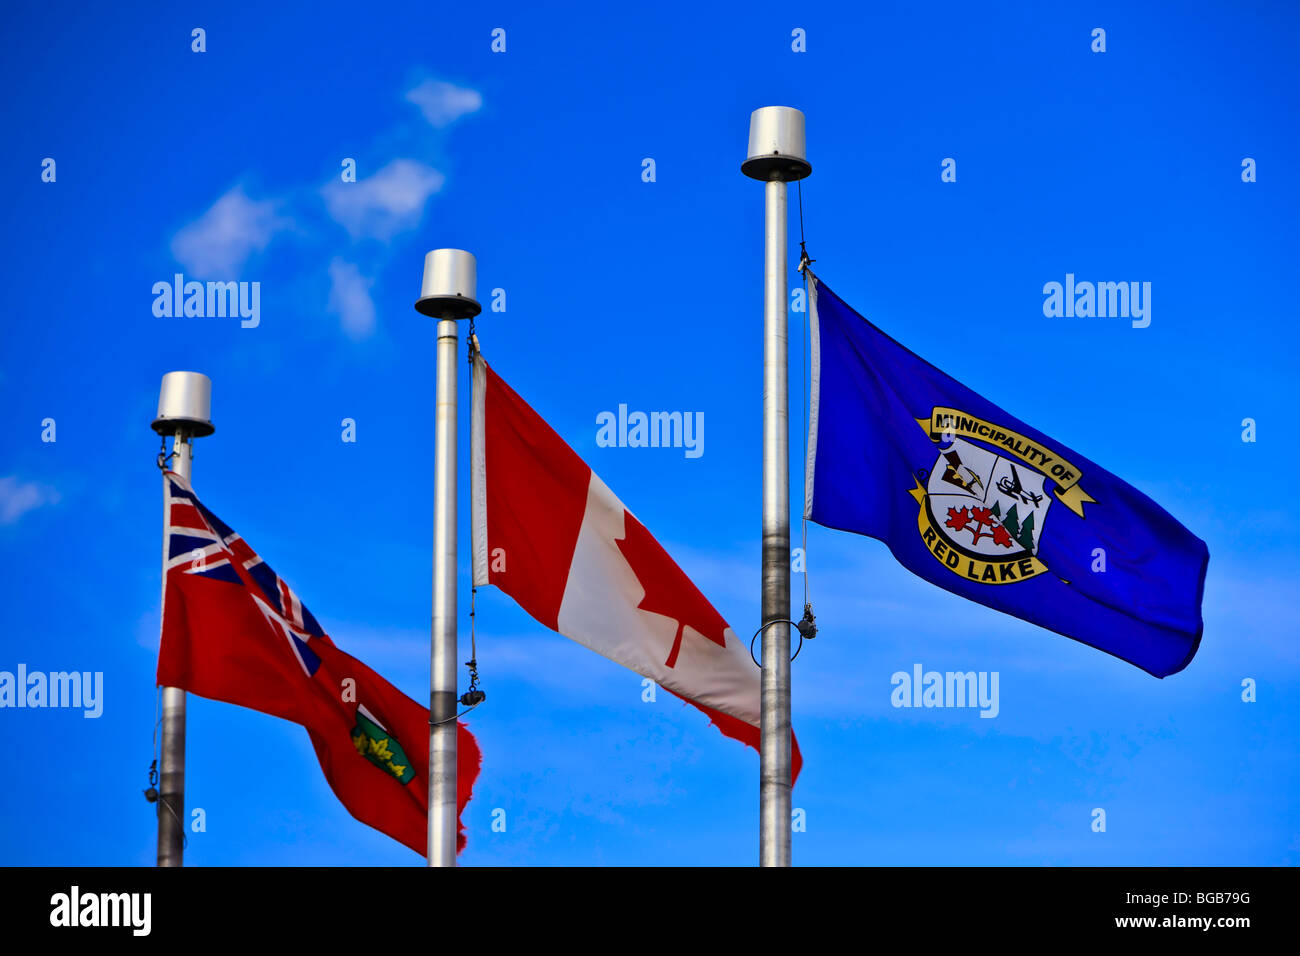 Three Flag Poles Stockfotos & Three Flag Poles Bilder - Alamy